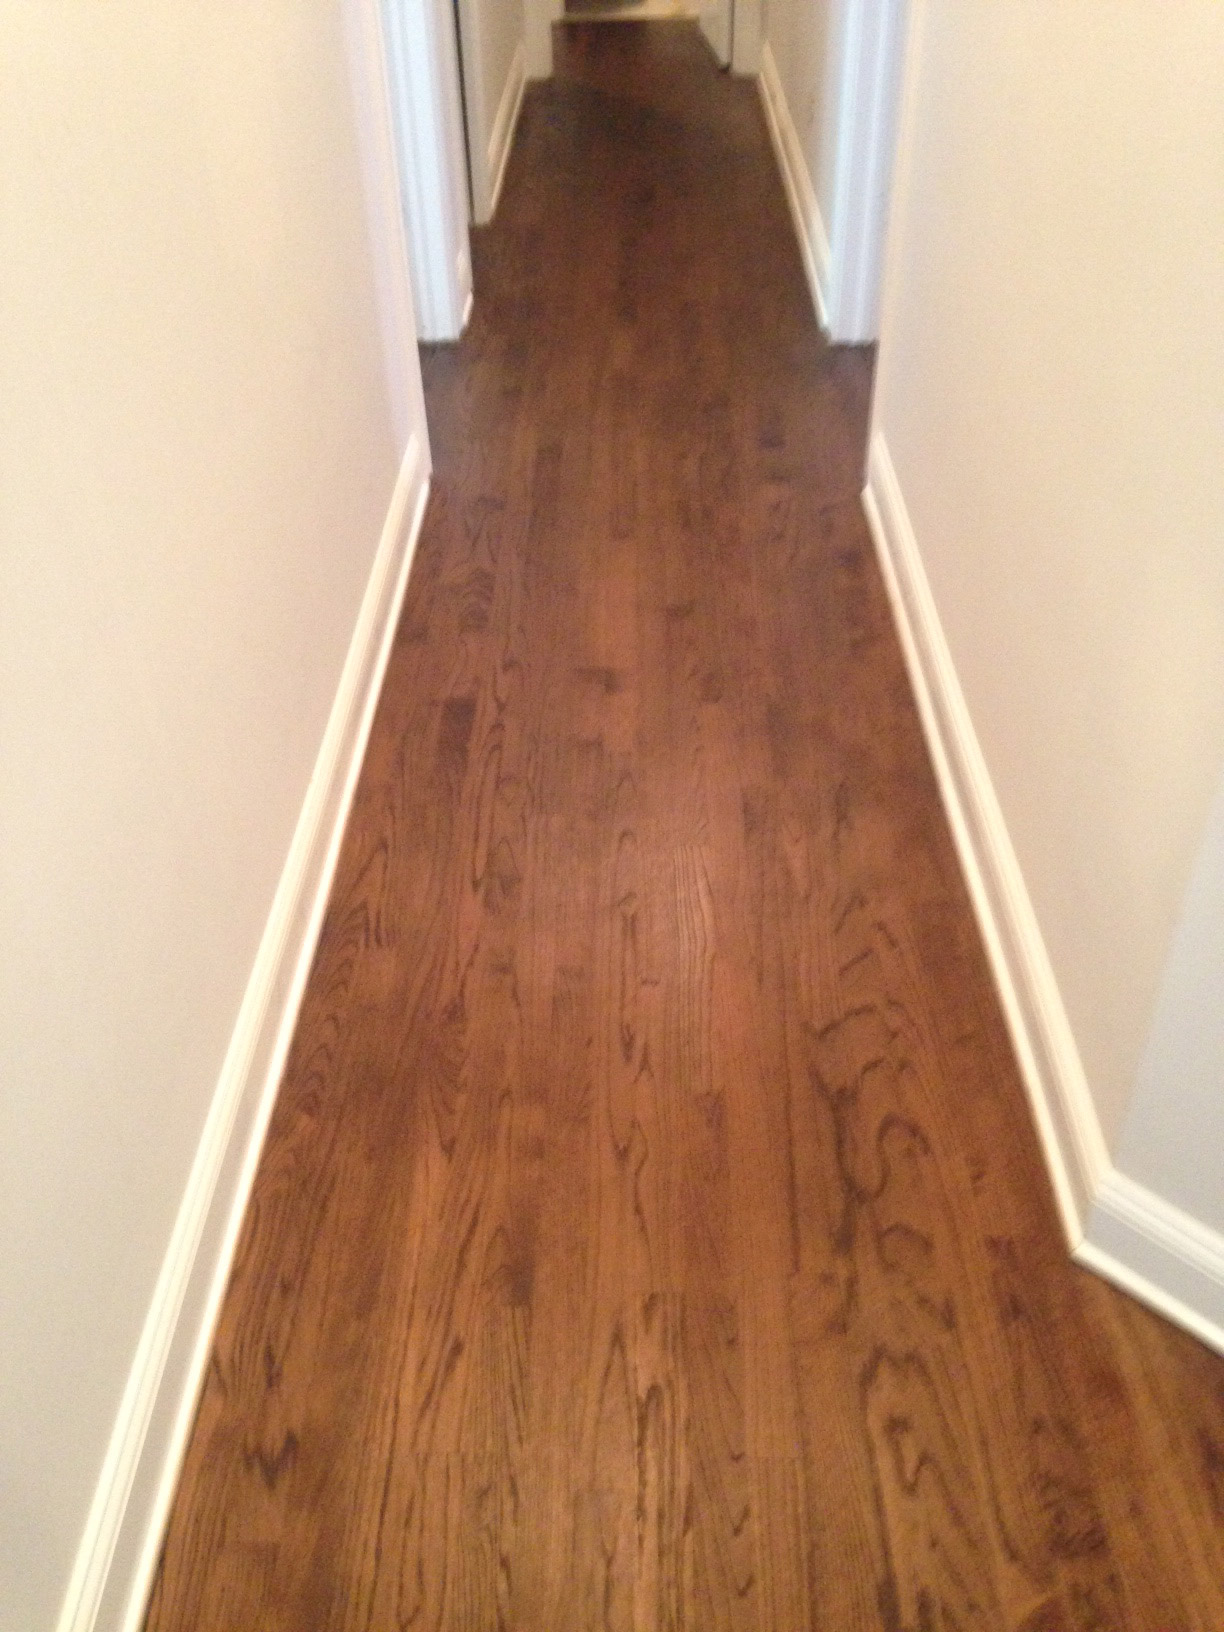 New hardwood floors wood floor refinishing epping forest for Hardwood floors quality